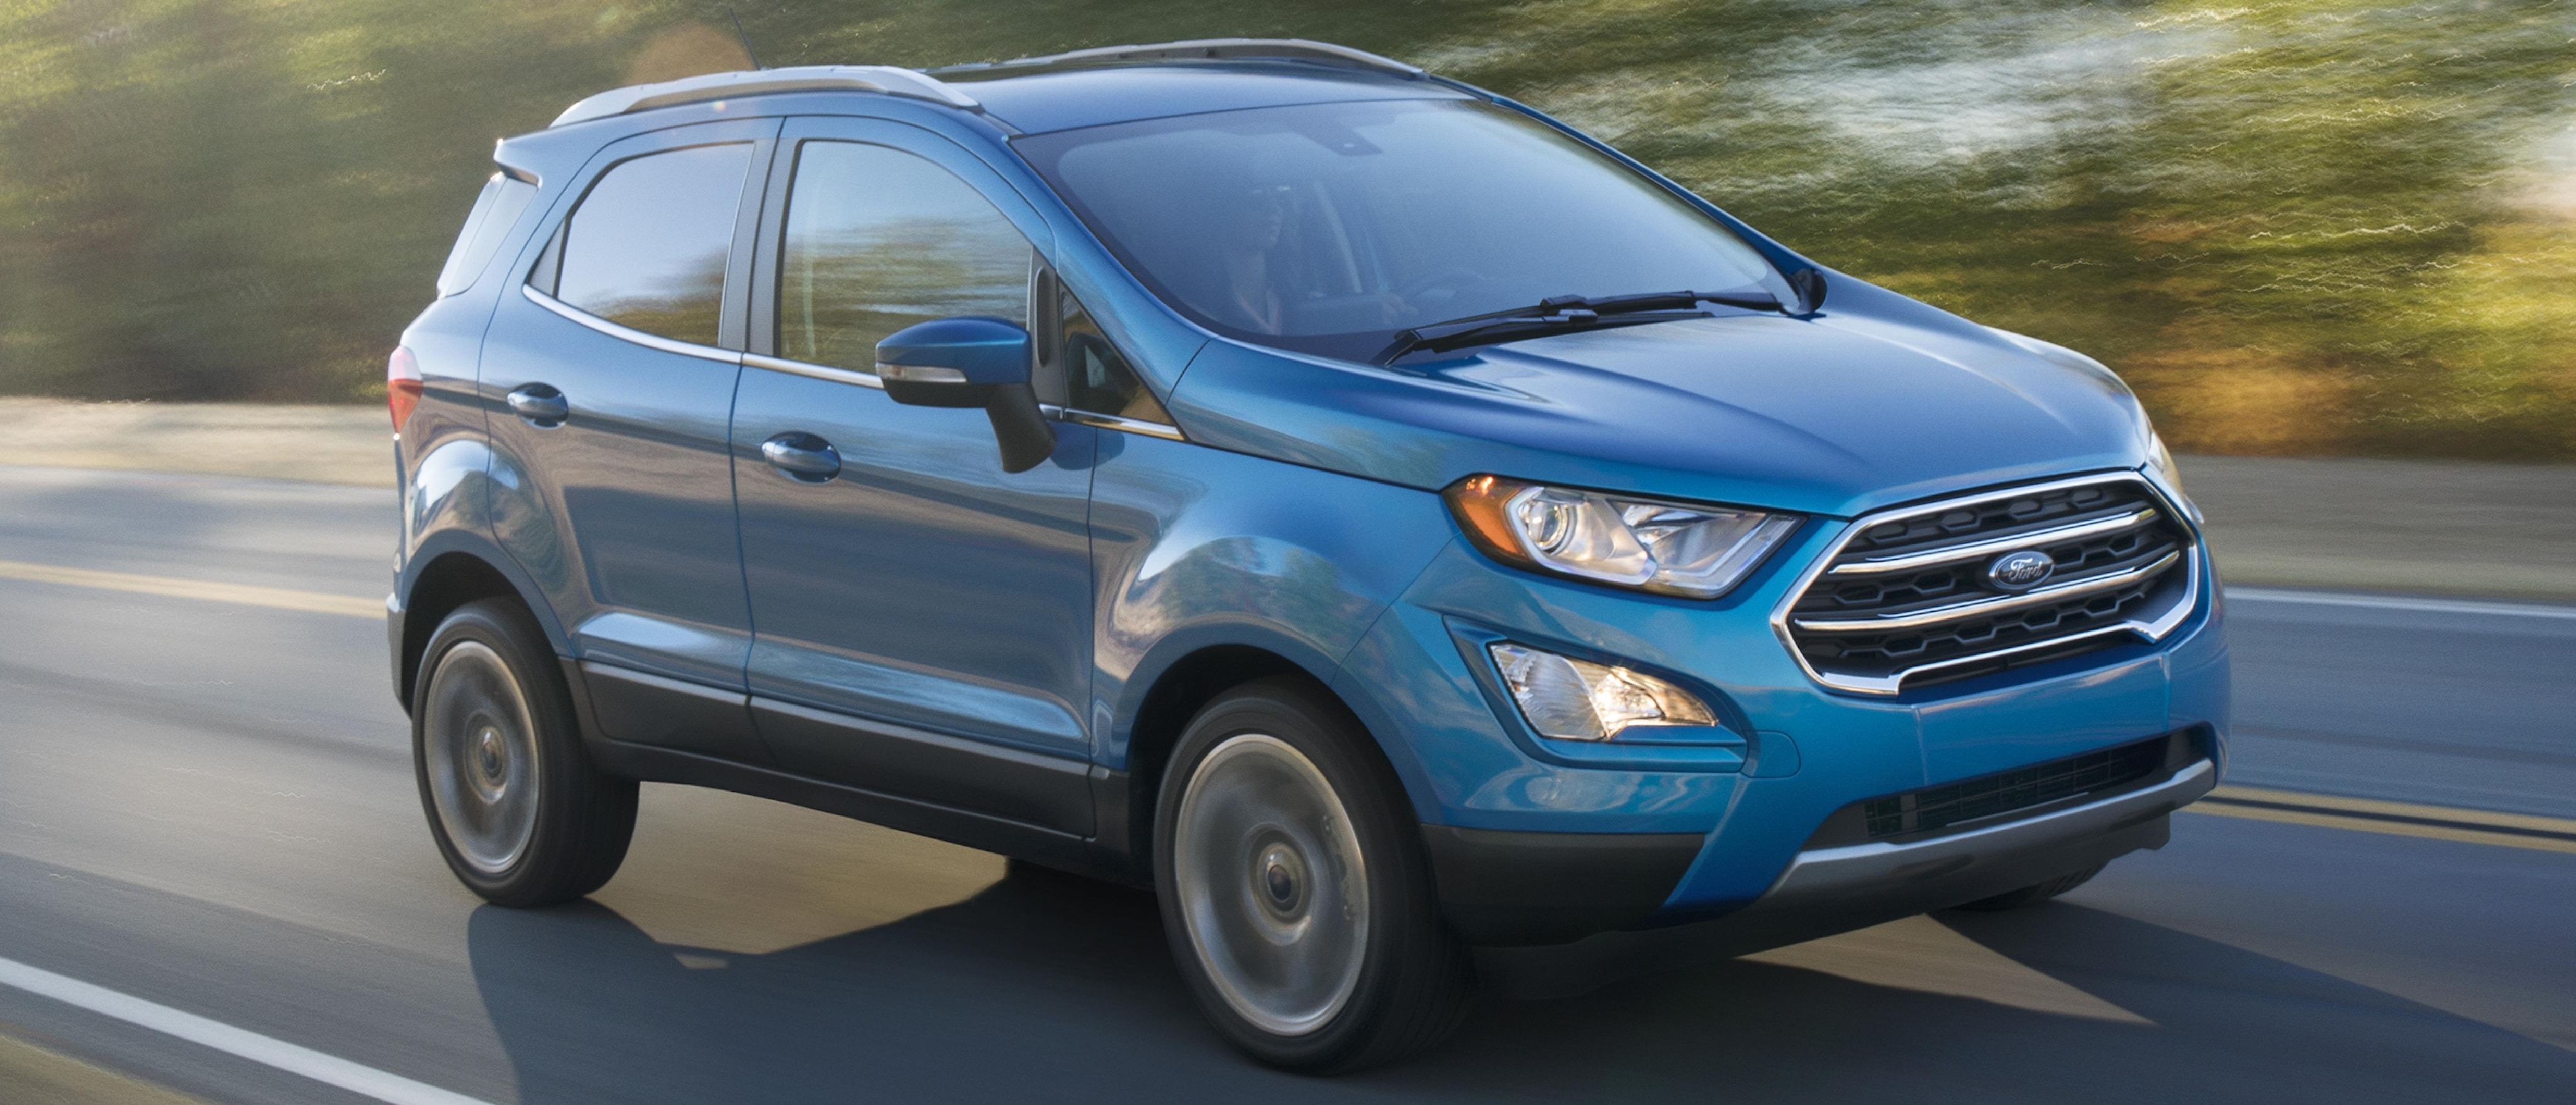 2018 ford ecosport suv for sale in near manchester nh. Black Bedroom Furniture Sets. Home Design Ideas